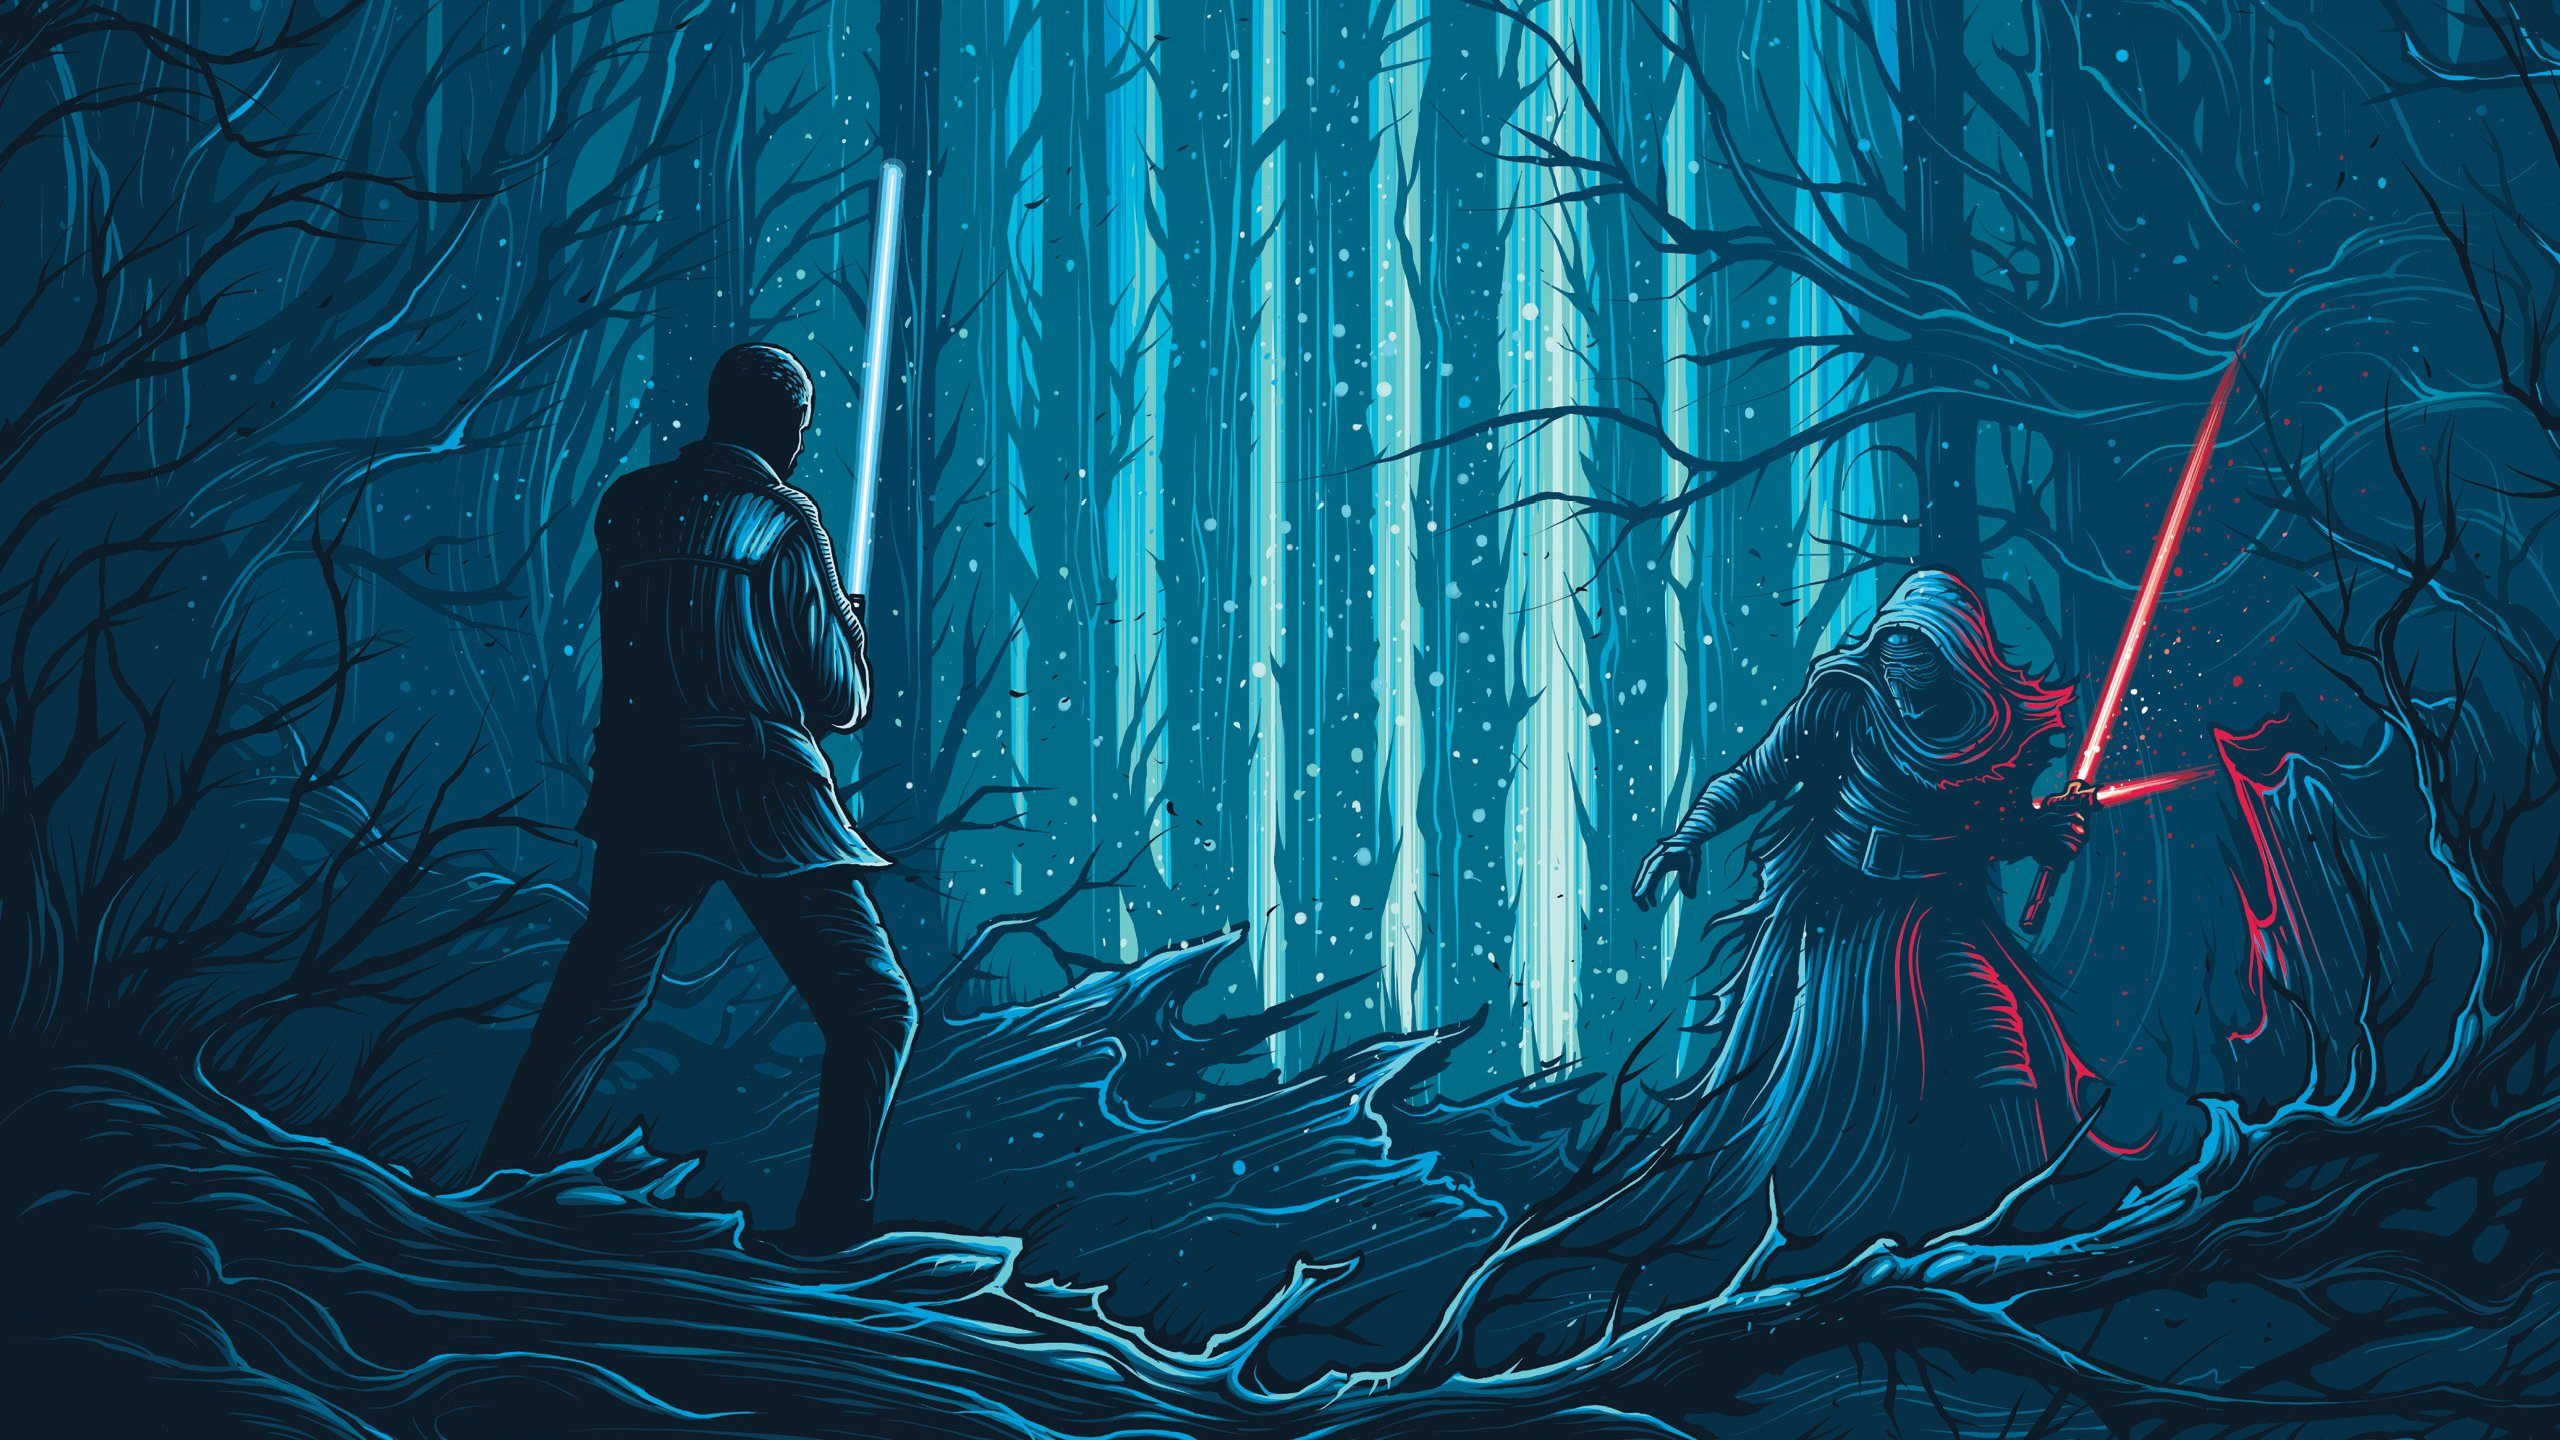 Hd Star Wars Background Posted By Sarah Peltier